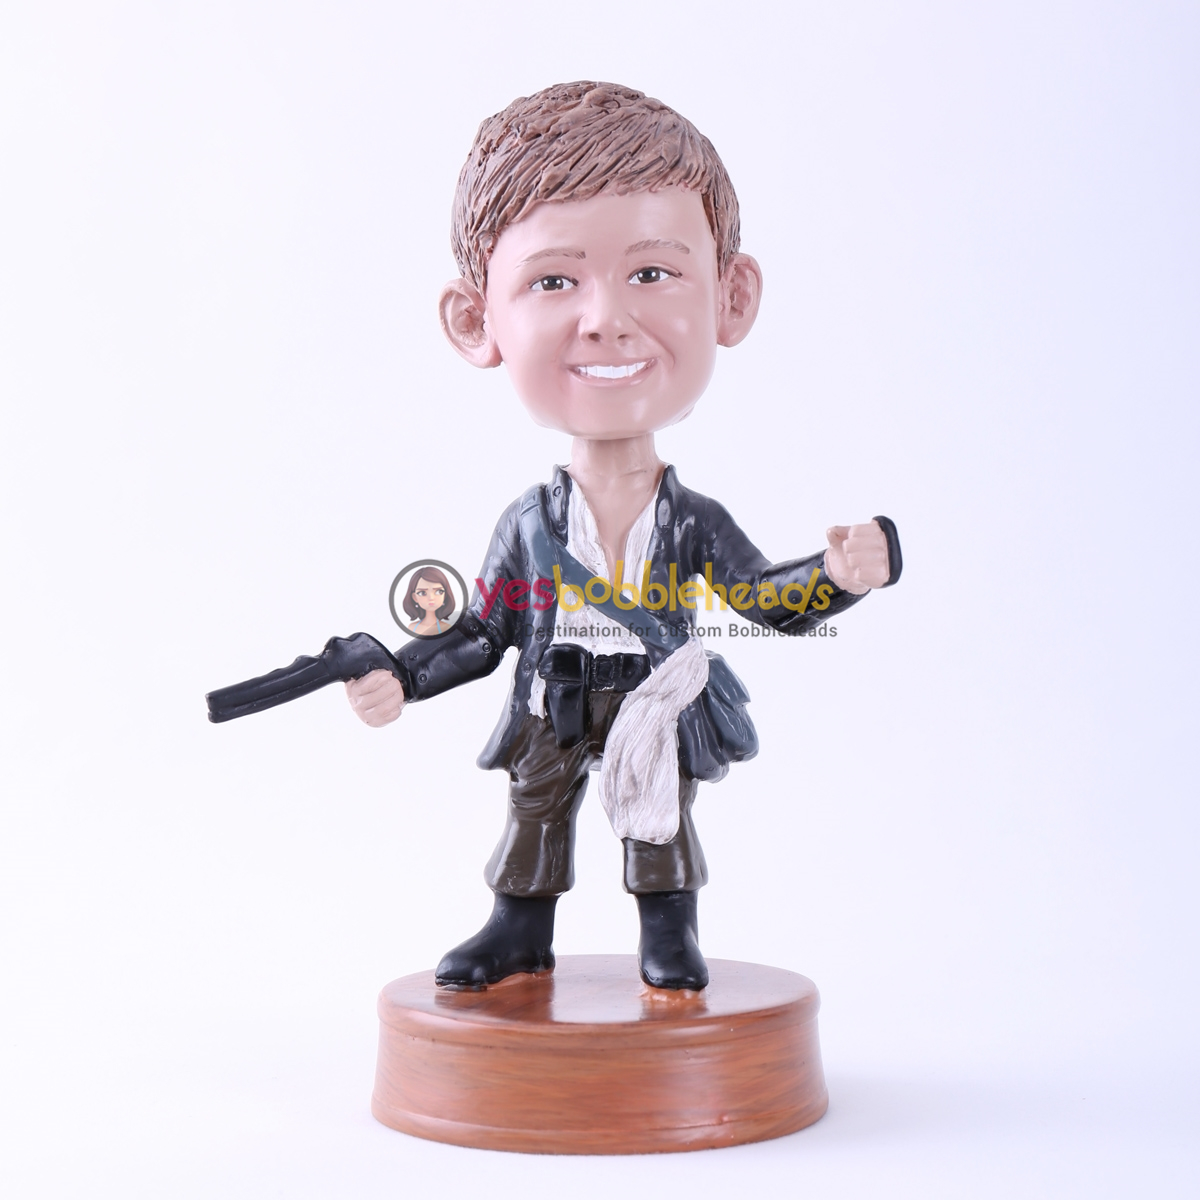 Picture of Custom Bobblehead Doll: Billy the Child